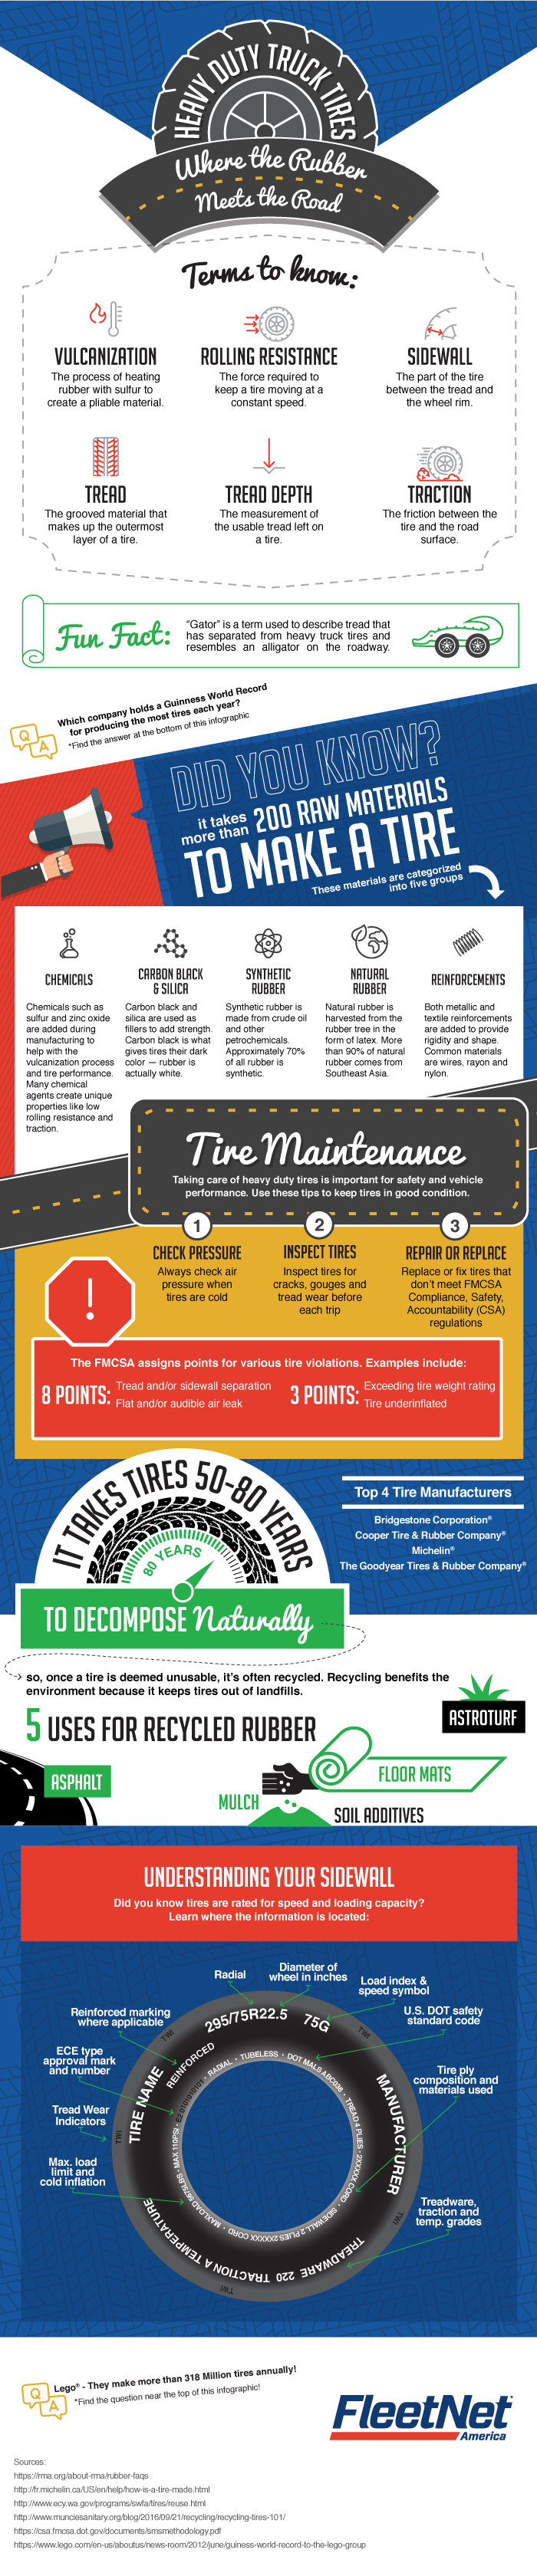 Important Things to Know About Commercial Truck Tires #infographic